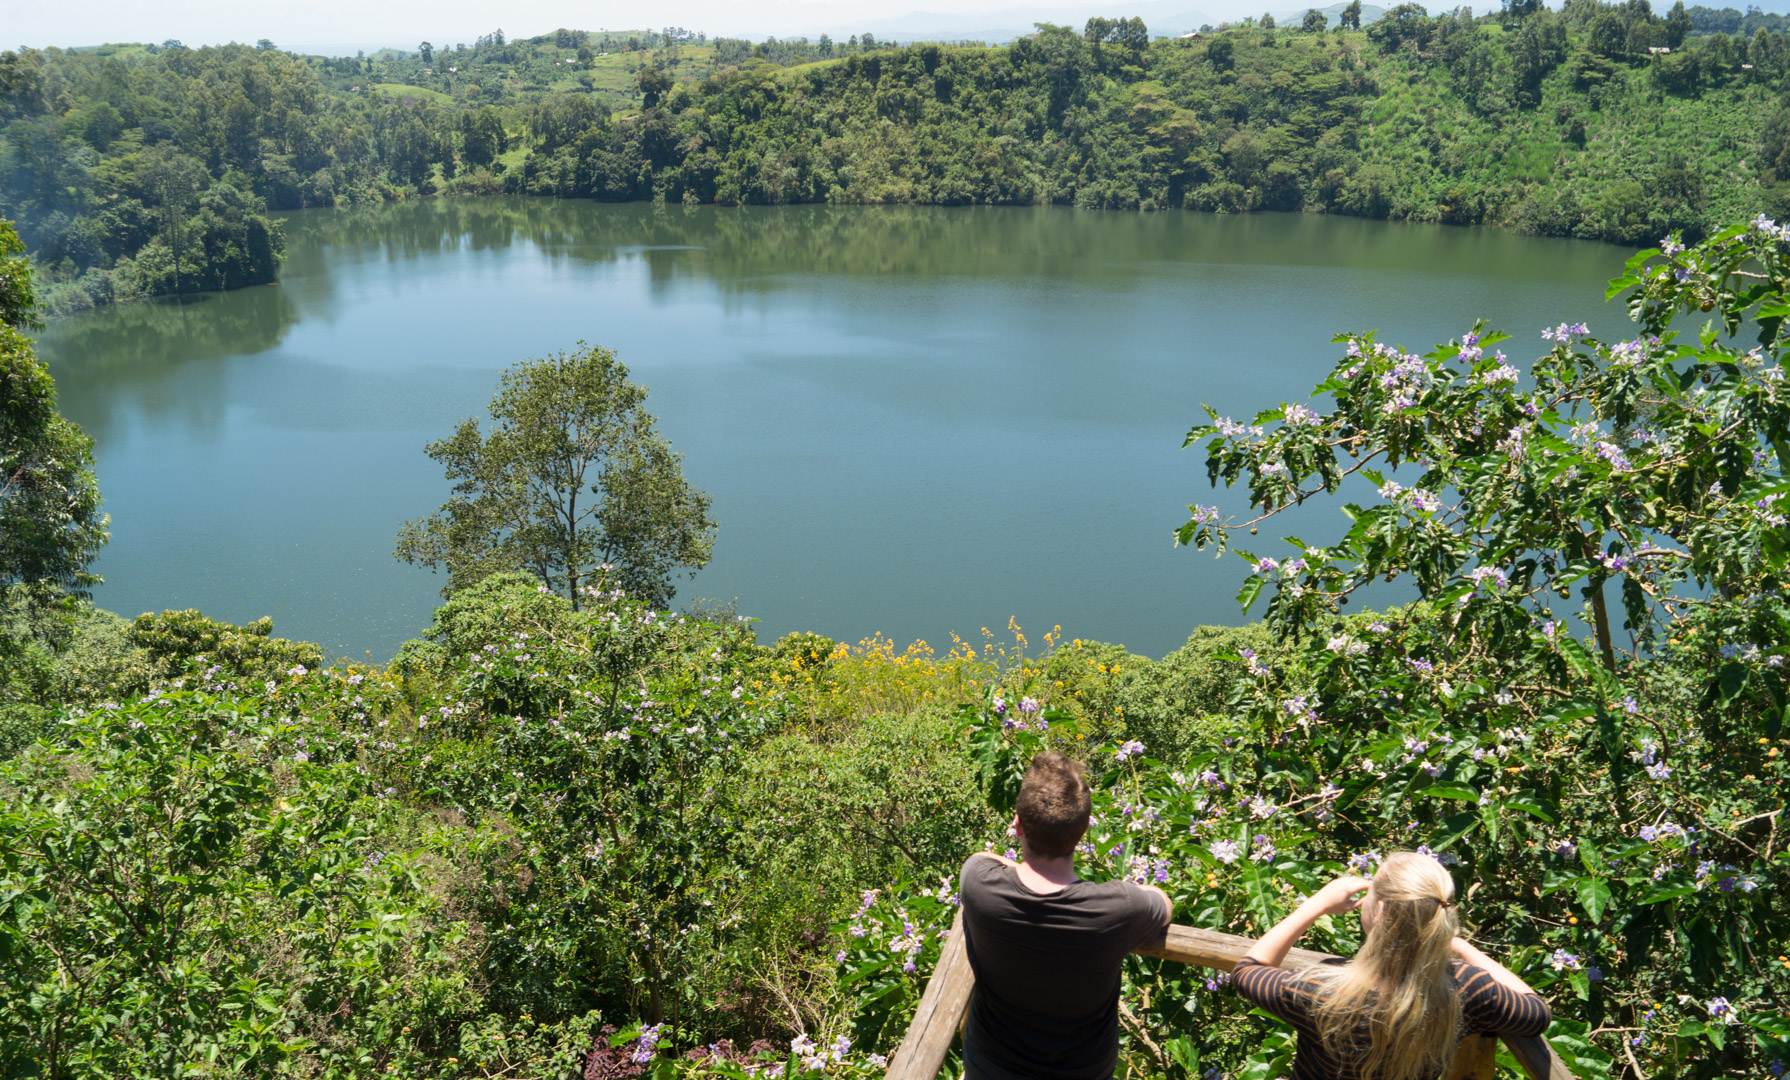 Crater Lakes - About 20-30 km south of Fort Portal are the Ndali-Kasenda Crater Lakes (about 60 fresh water lakes). You can make a scenic route by car or you can explore them on foot.